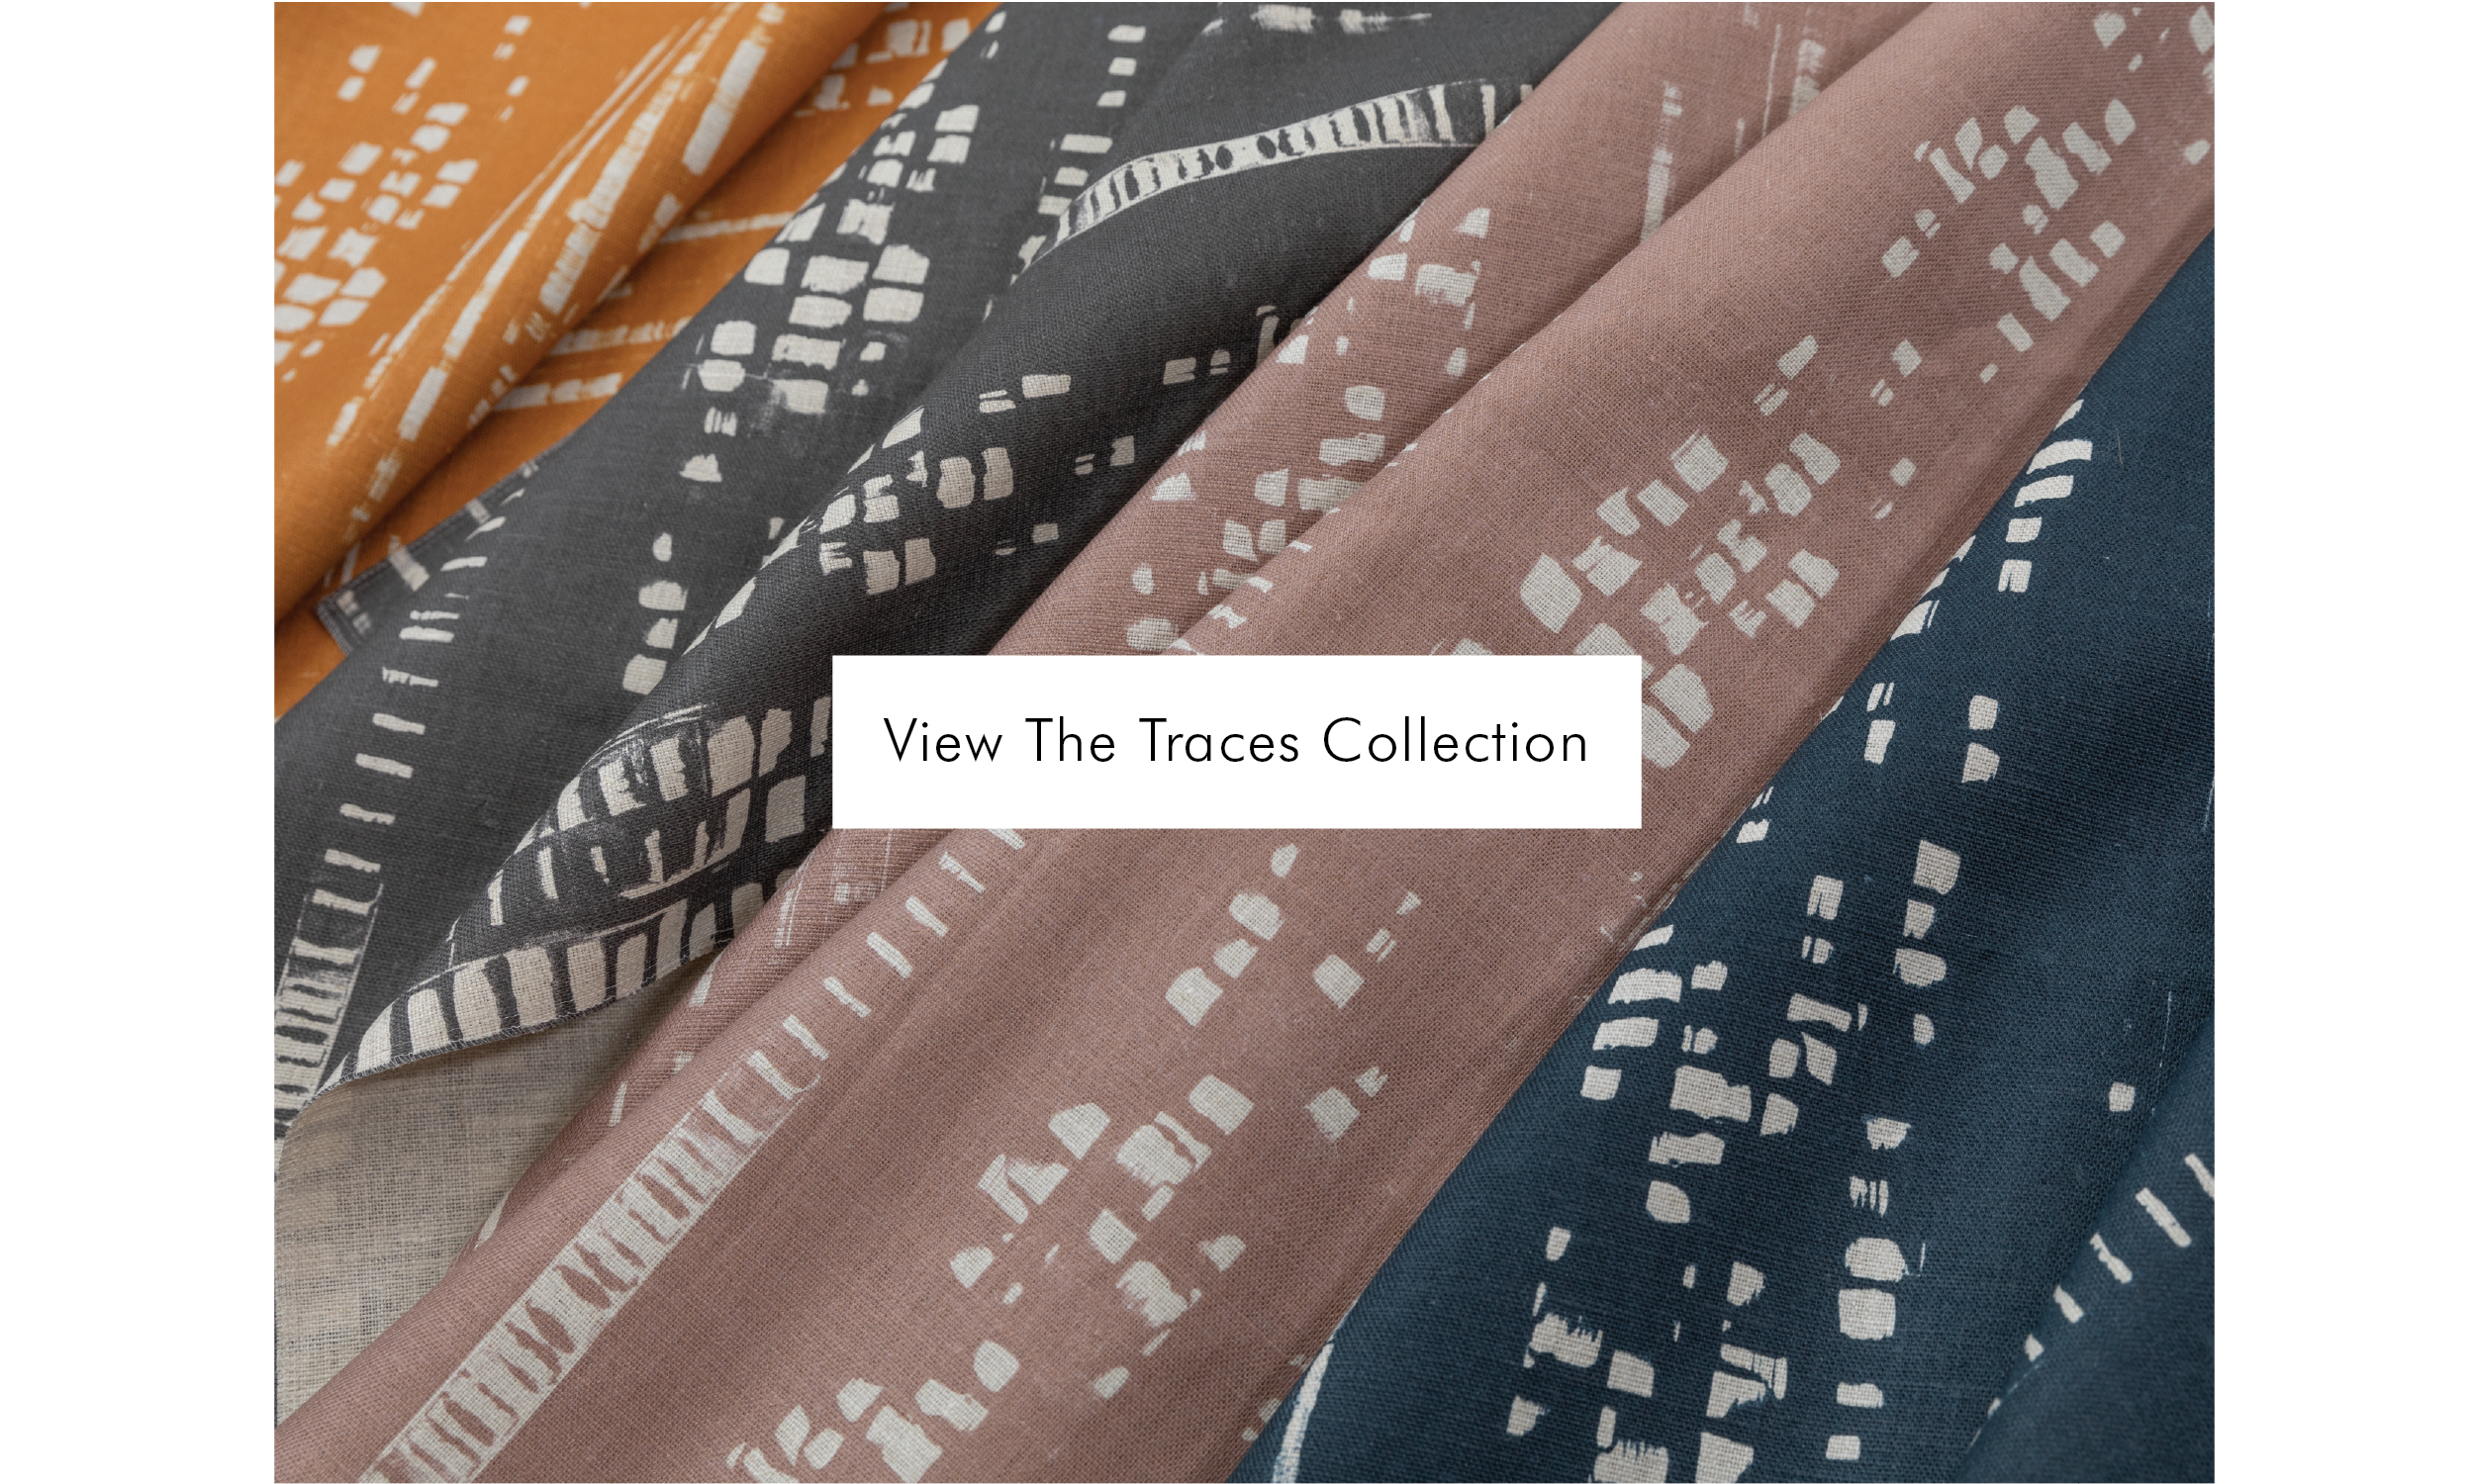 View all traces collection